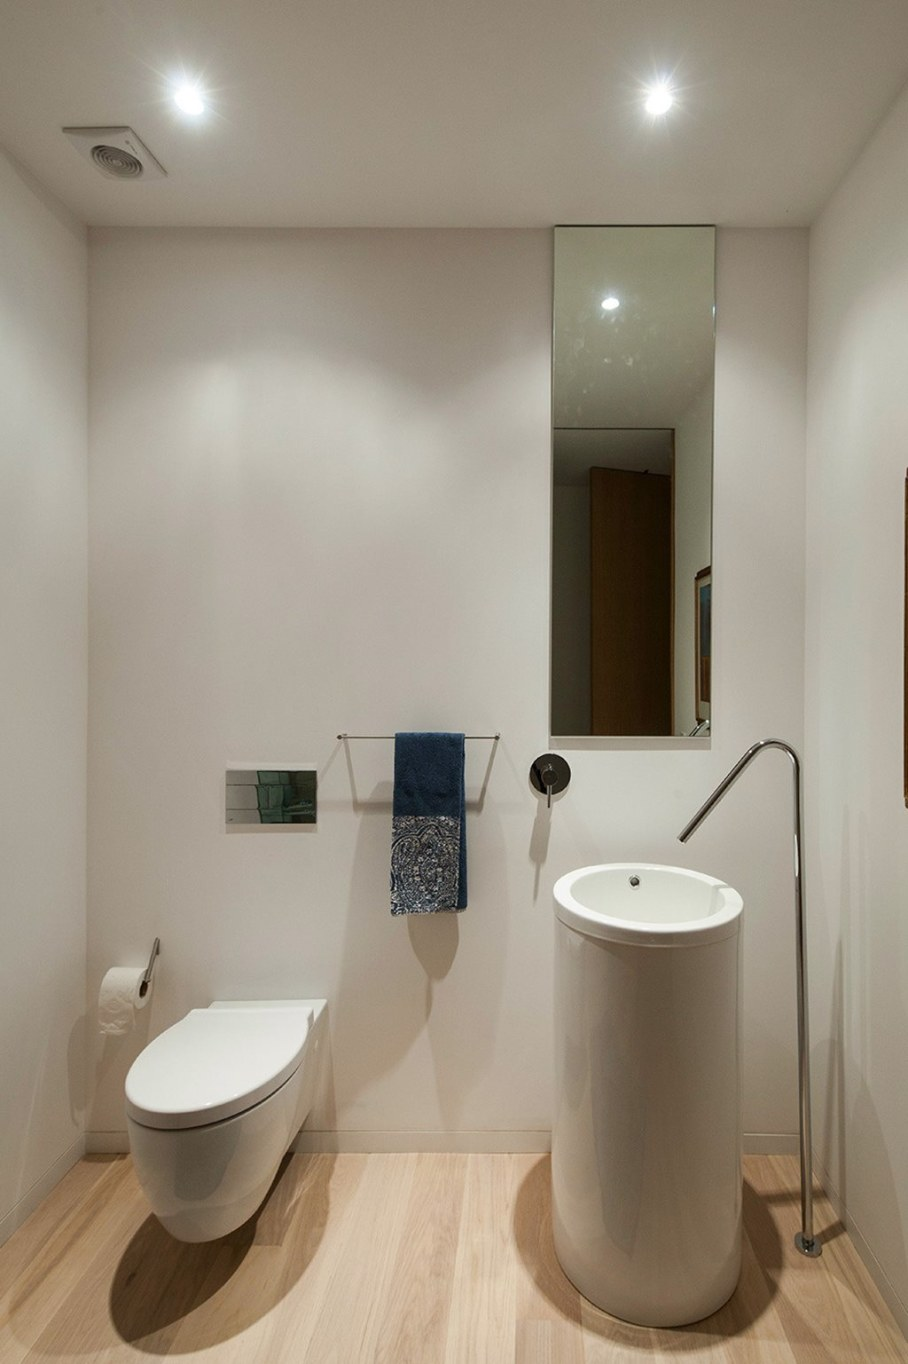 Cozy House For A Family With Children In Portugal - Washroom